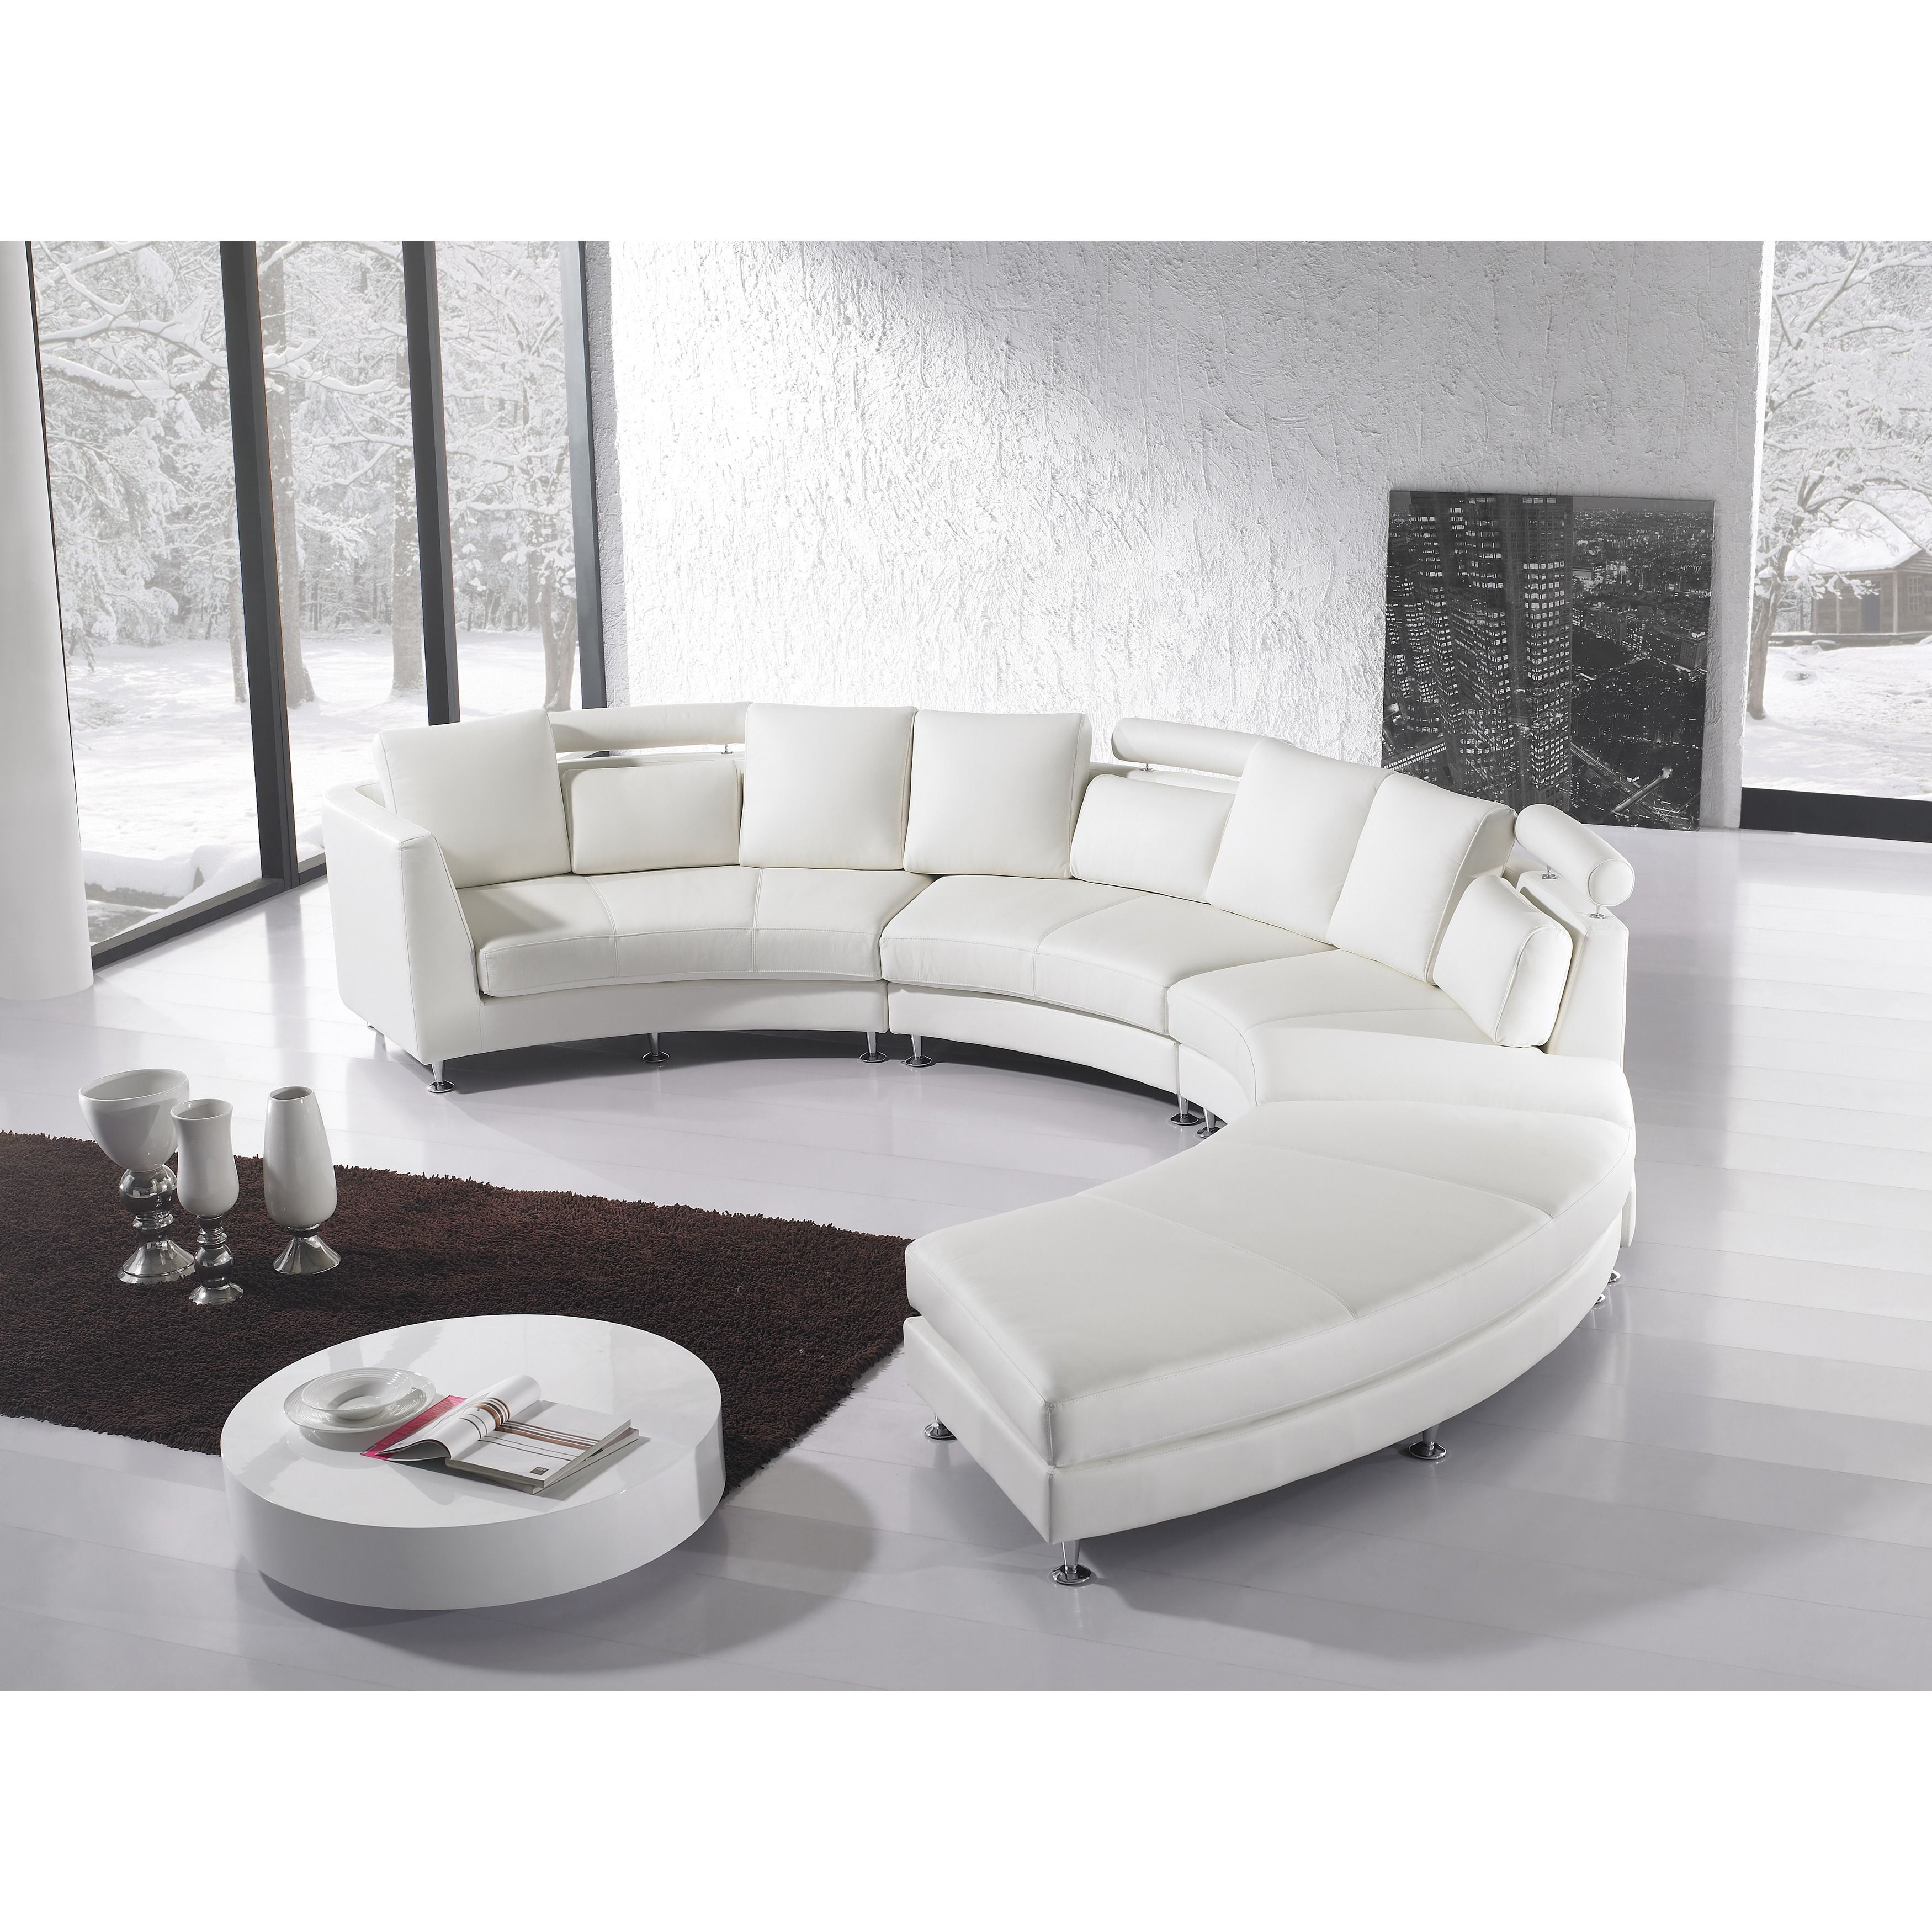 Velago Rossini White Modern Design Round Leather Sectional Rotunde Ivory